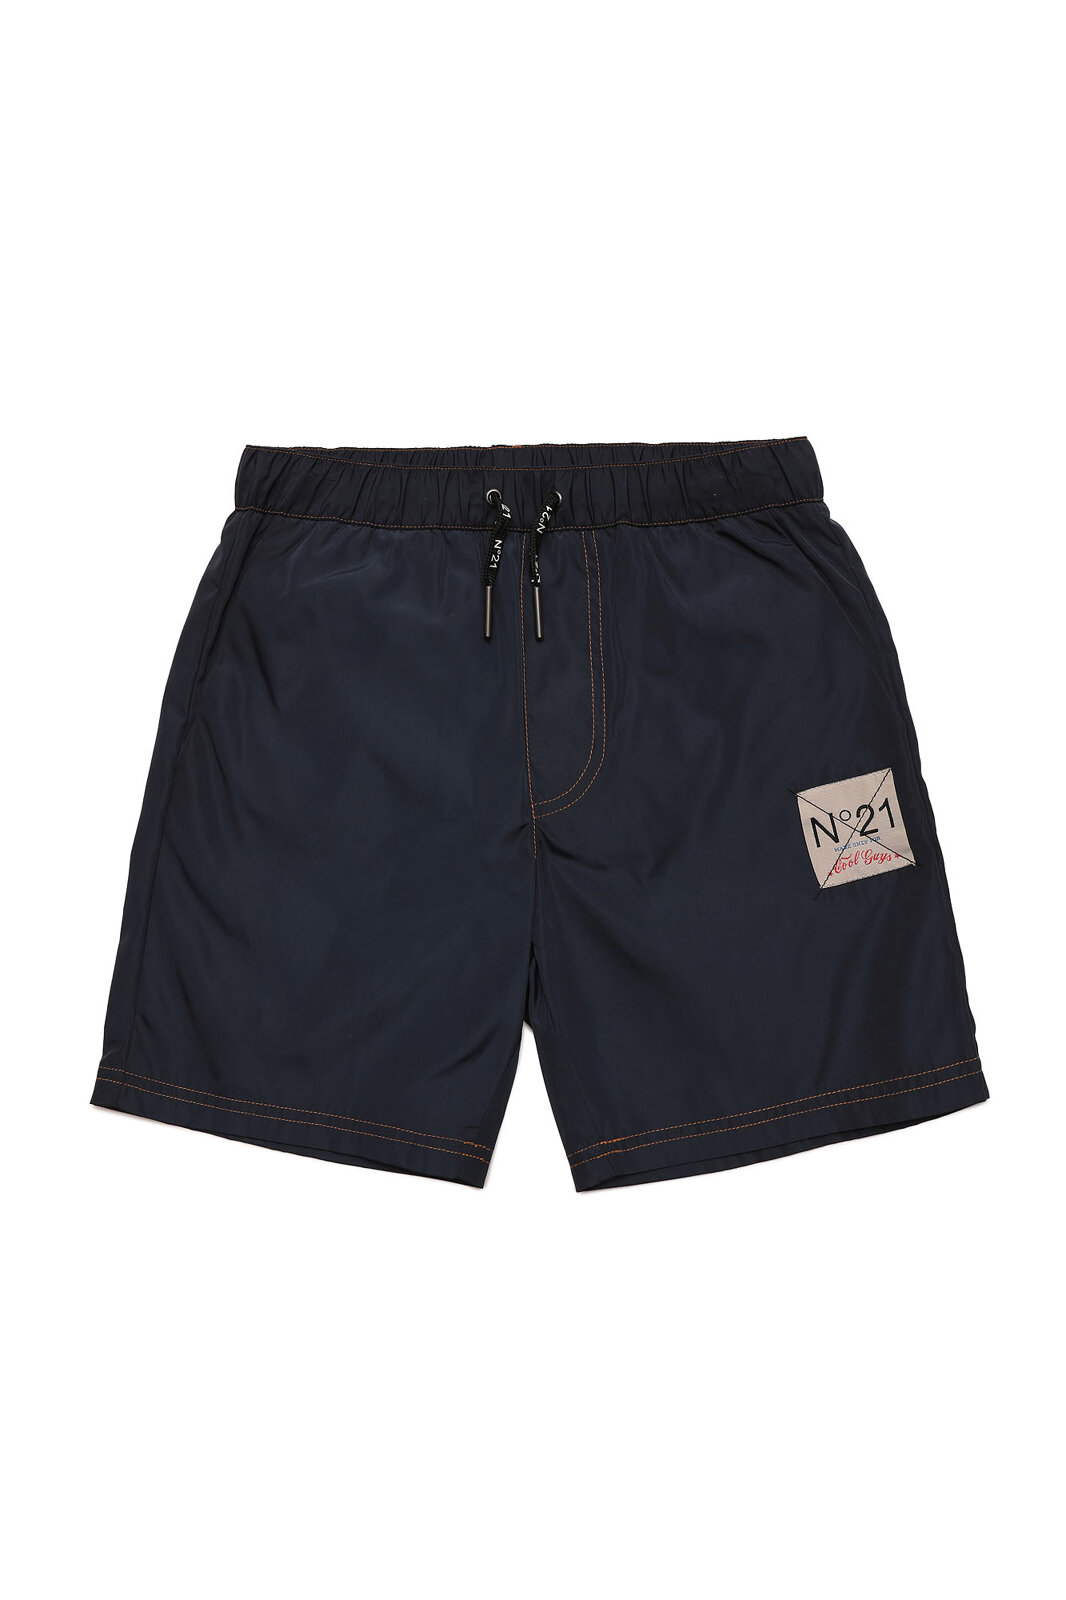 Beachwear - N21 Junior